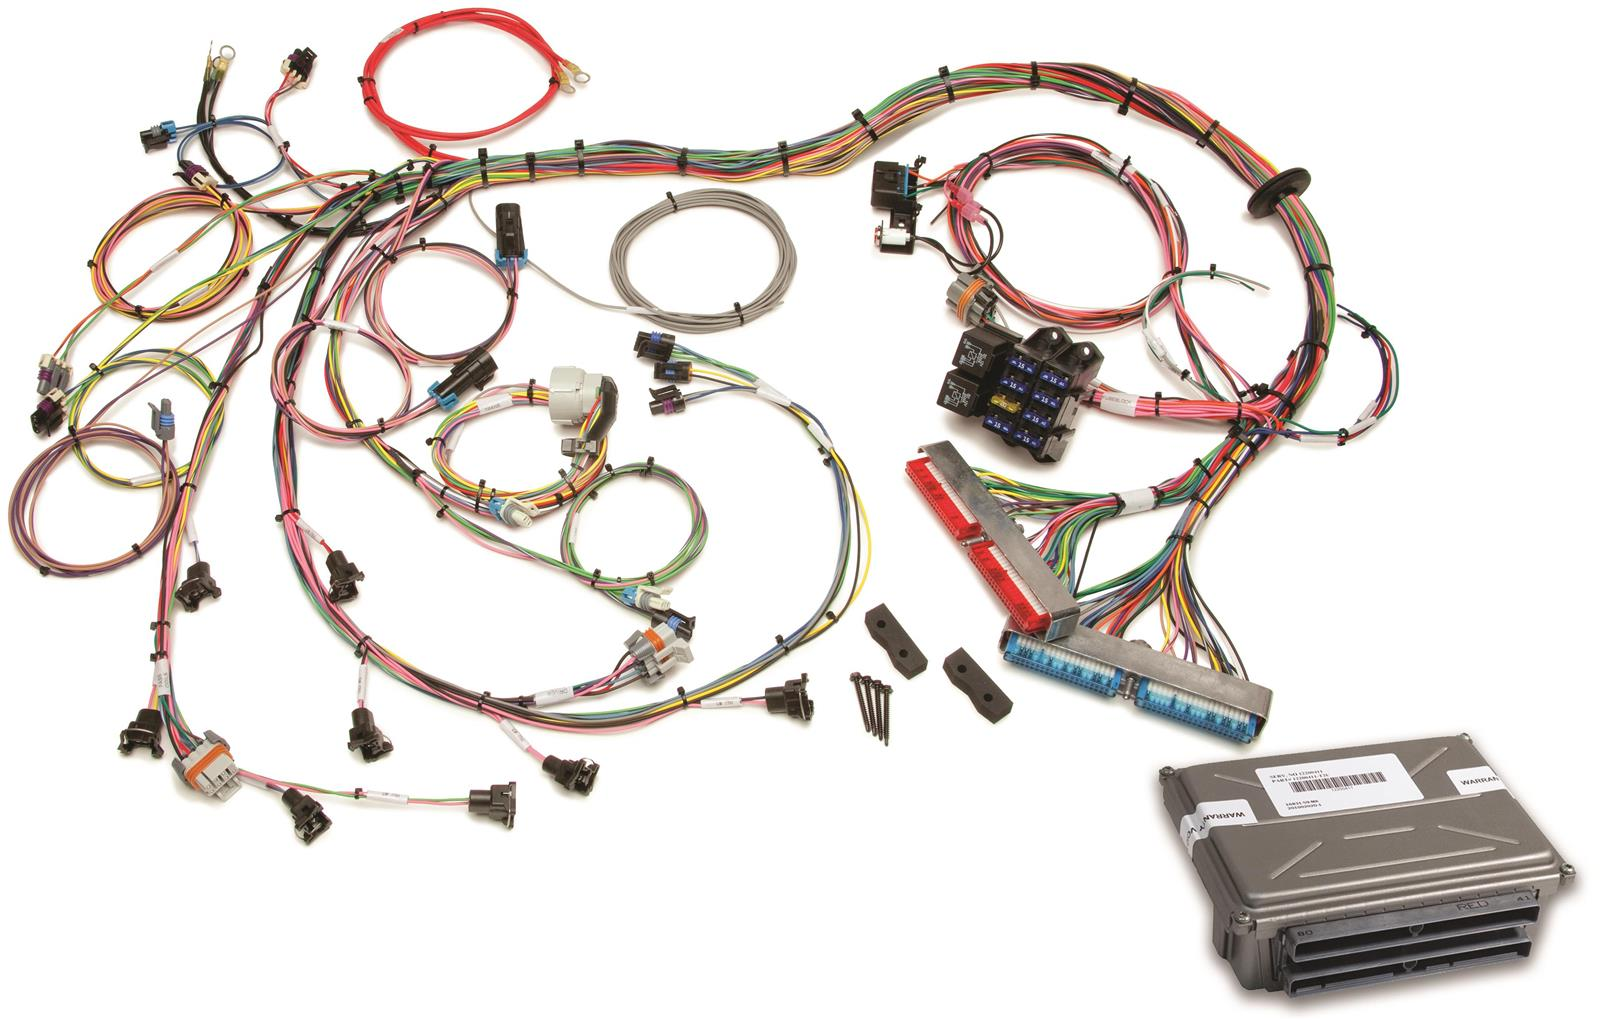 hight resolution of painless performance gm ls1 ls6 efi harnesses 60713 free shipping on orders over 99 at summit racing